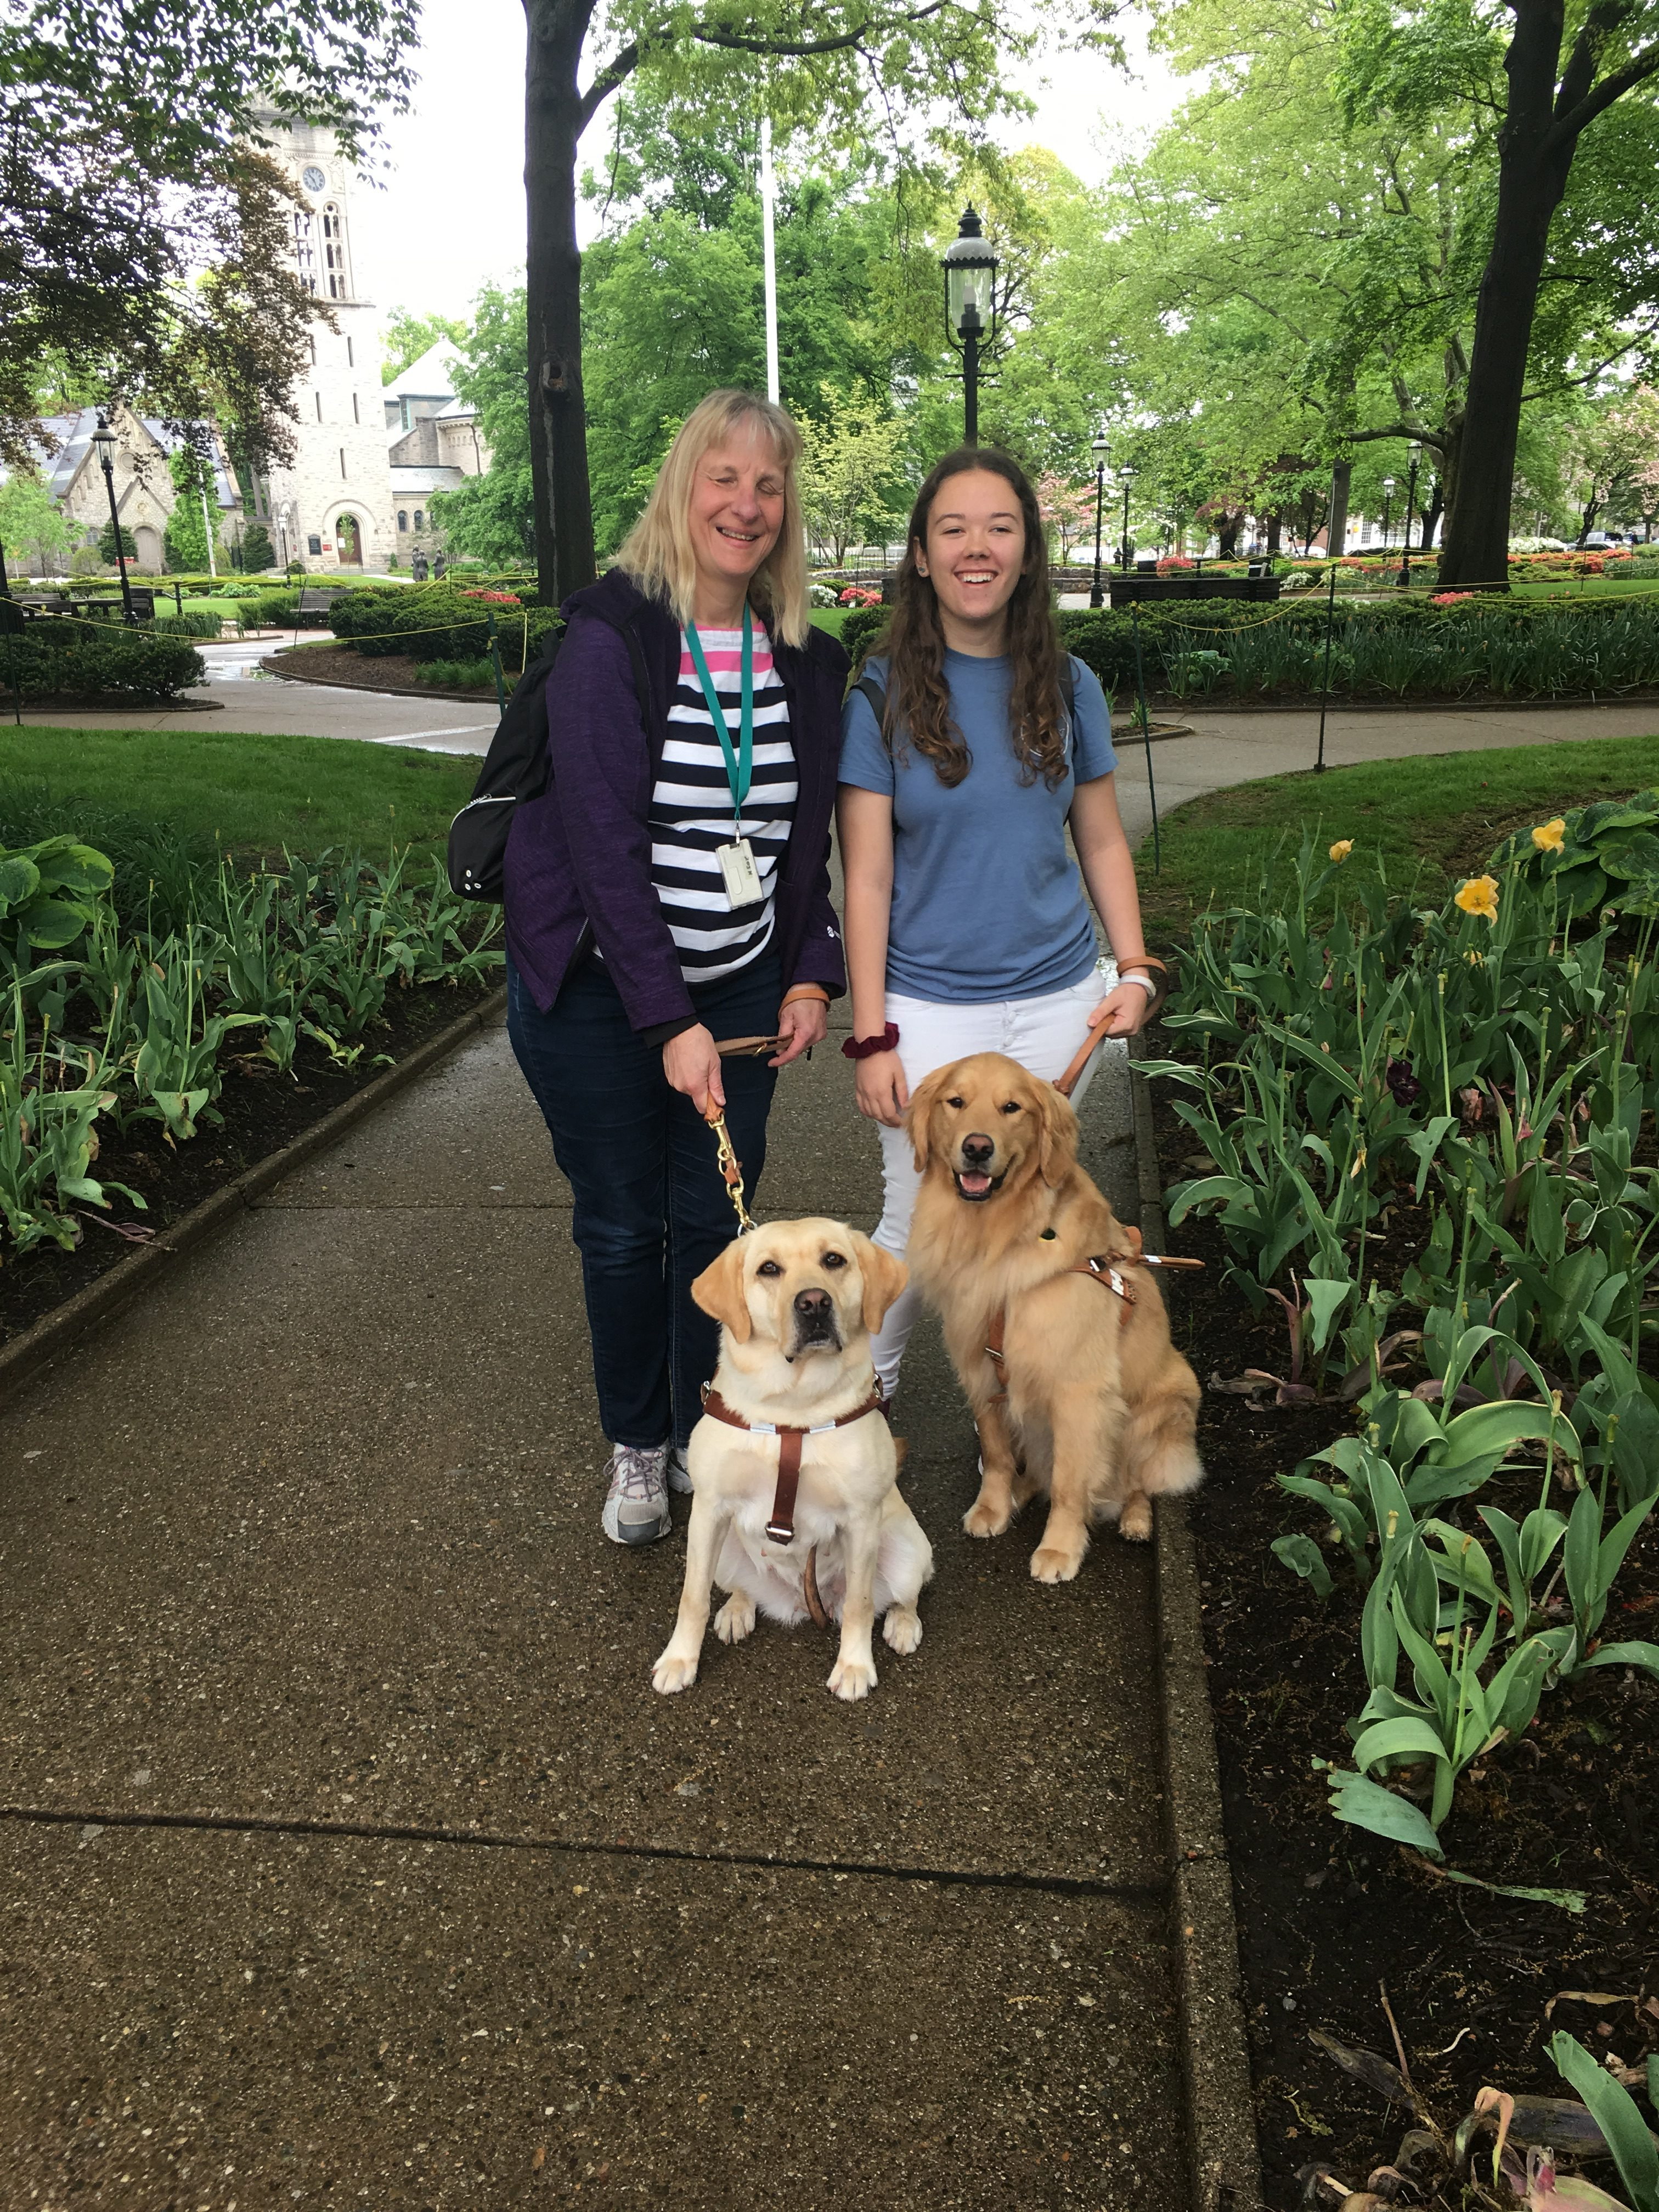 Judy and classmate, Shelbi, with their dogs in the park (Morristown Green)